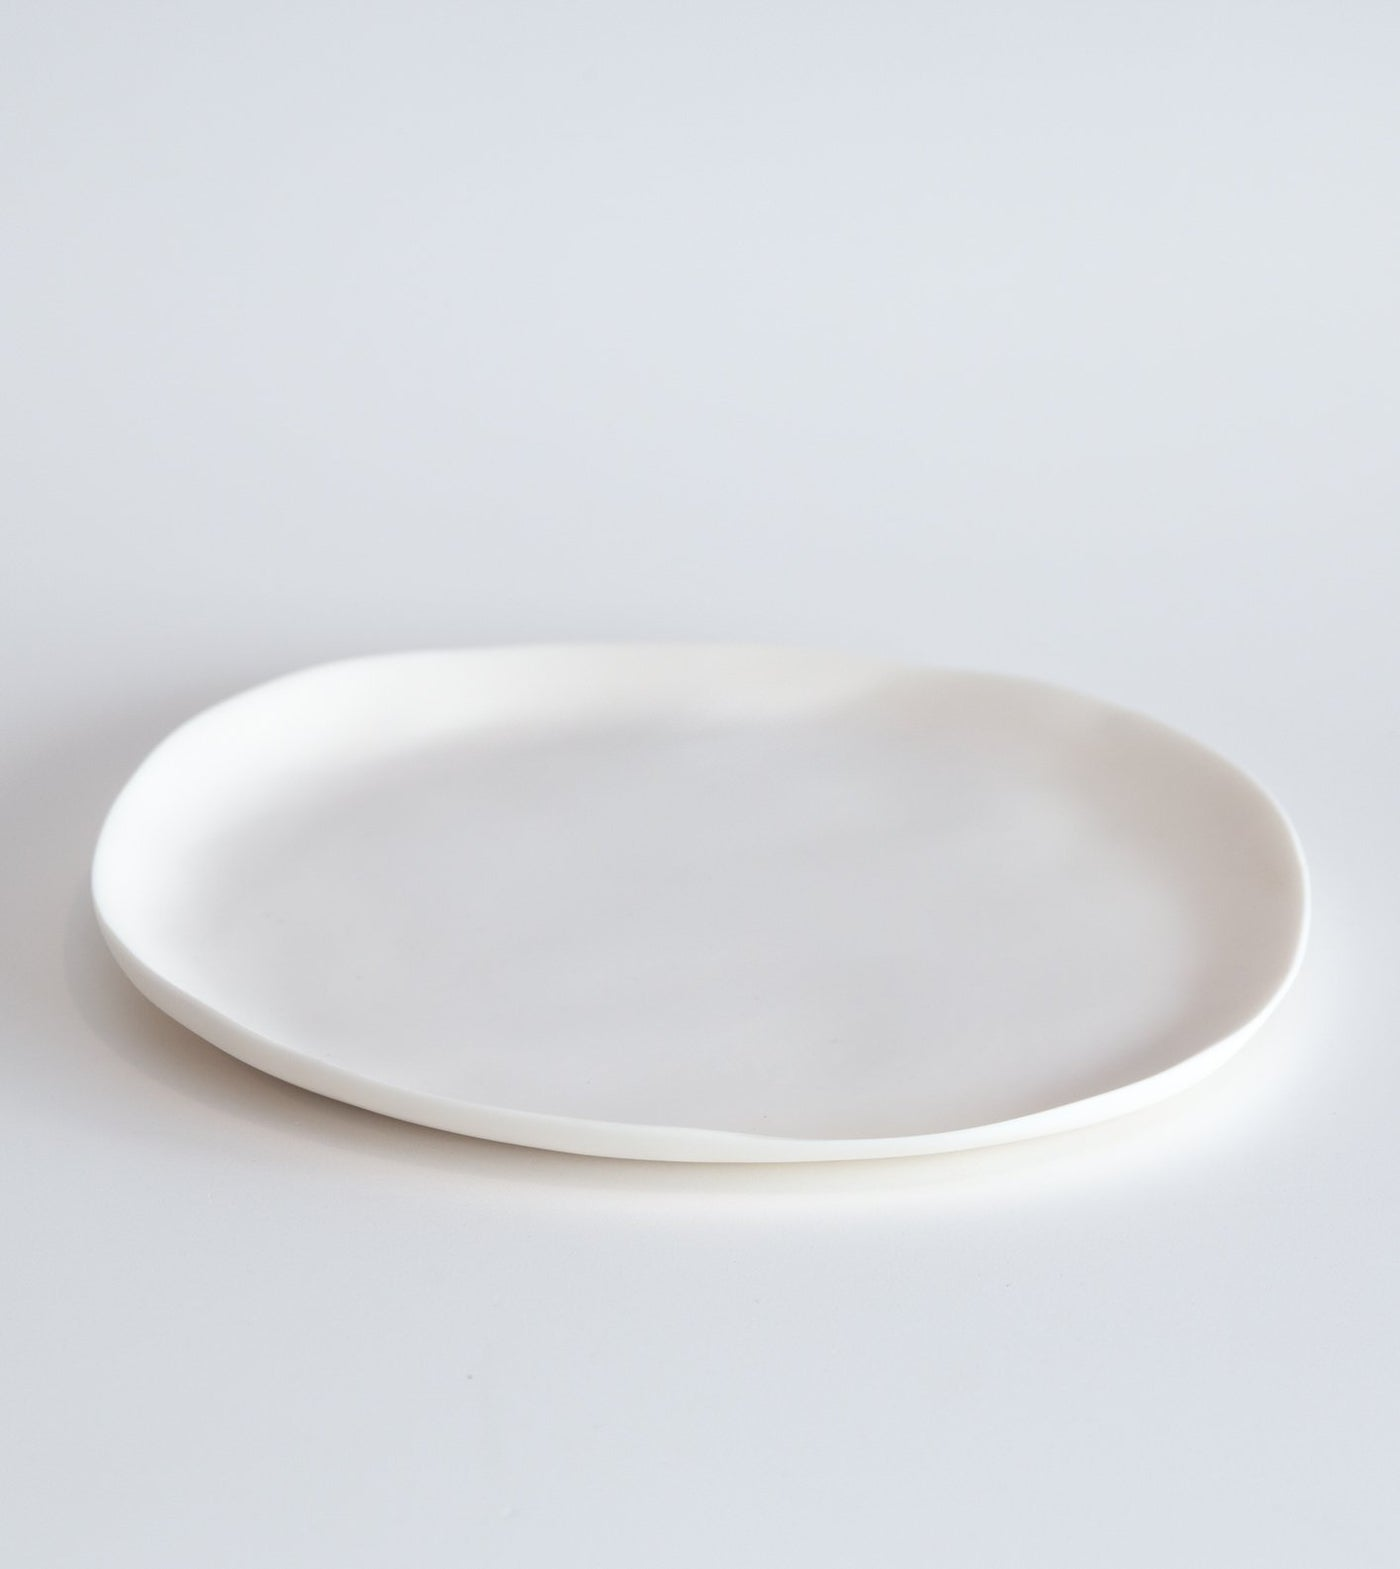 white serving platter, resin serving platter, designer resin platter, Tina Frey Designs Australia